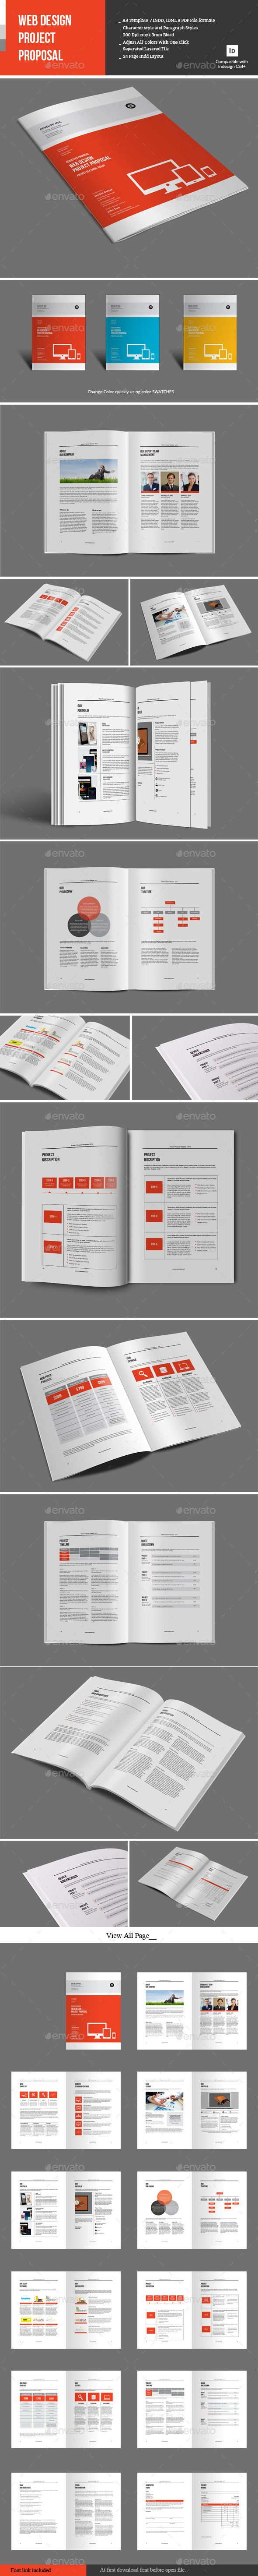 proposal report template%0A Web Design Project Proposal Template   Download  http   graphicriver net